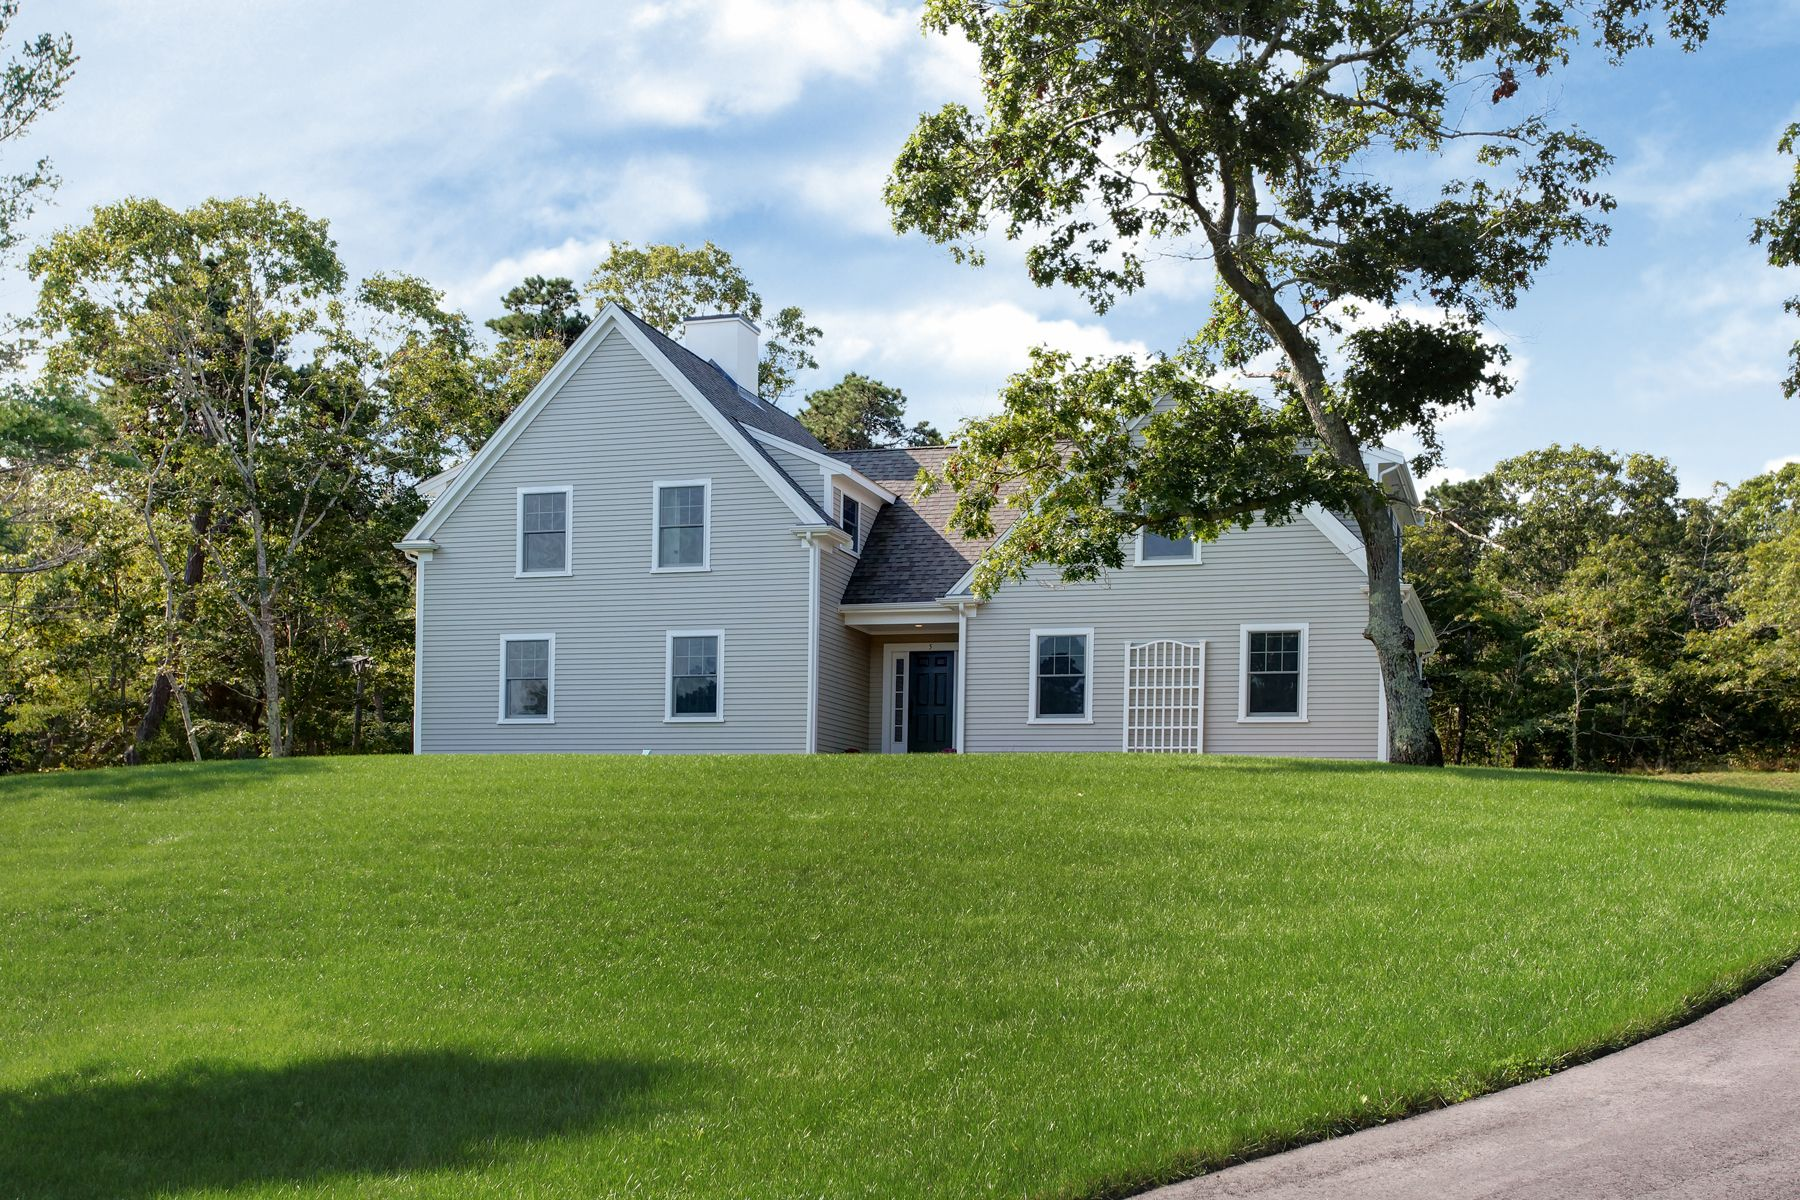 Single Family Homes for Sale at 5 Brewster Lane, Sandwich 5 Brewster Lane Sandwich, Massachusetts 02563 United States